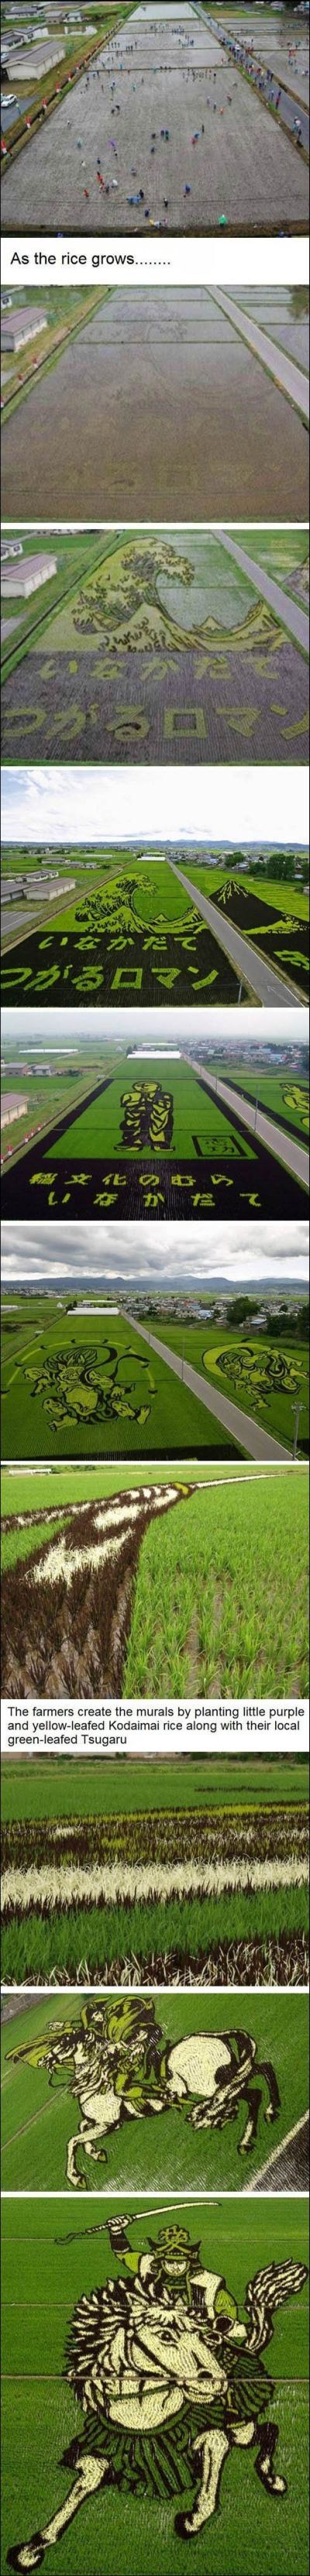 Rice fields art